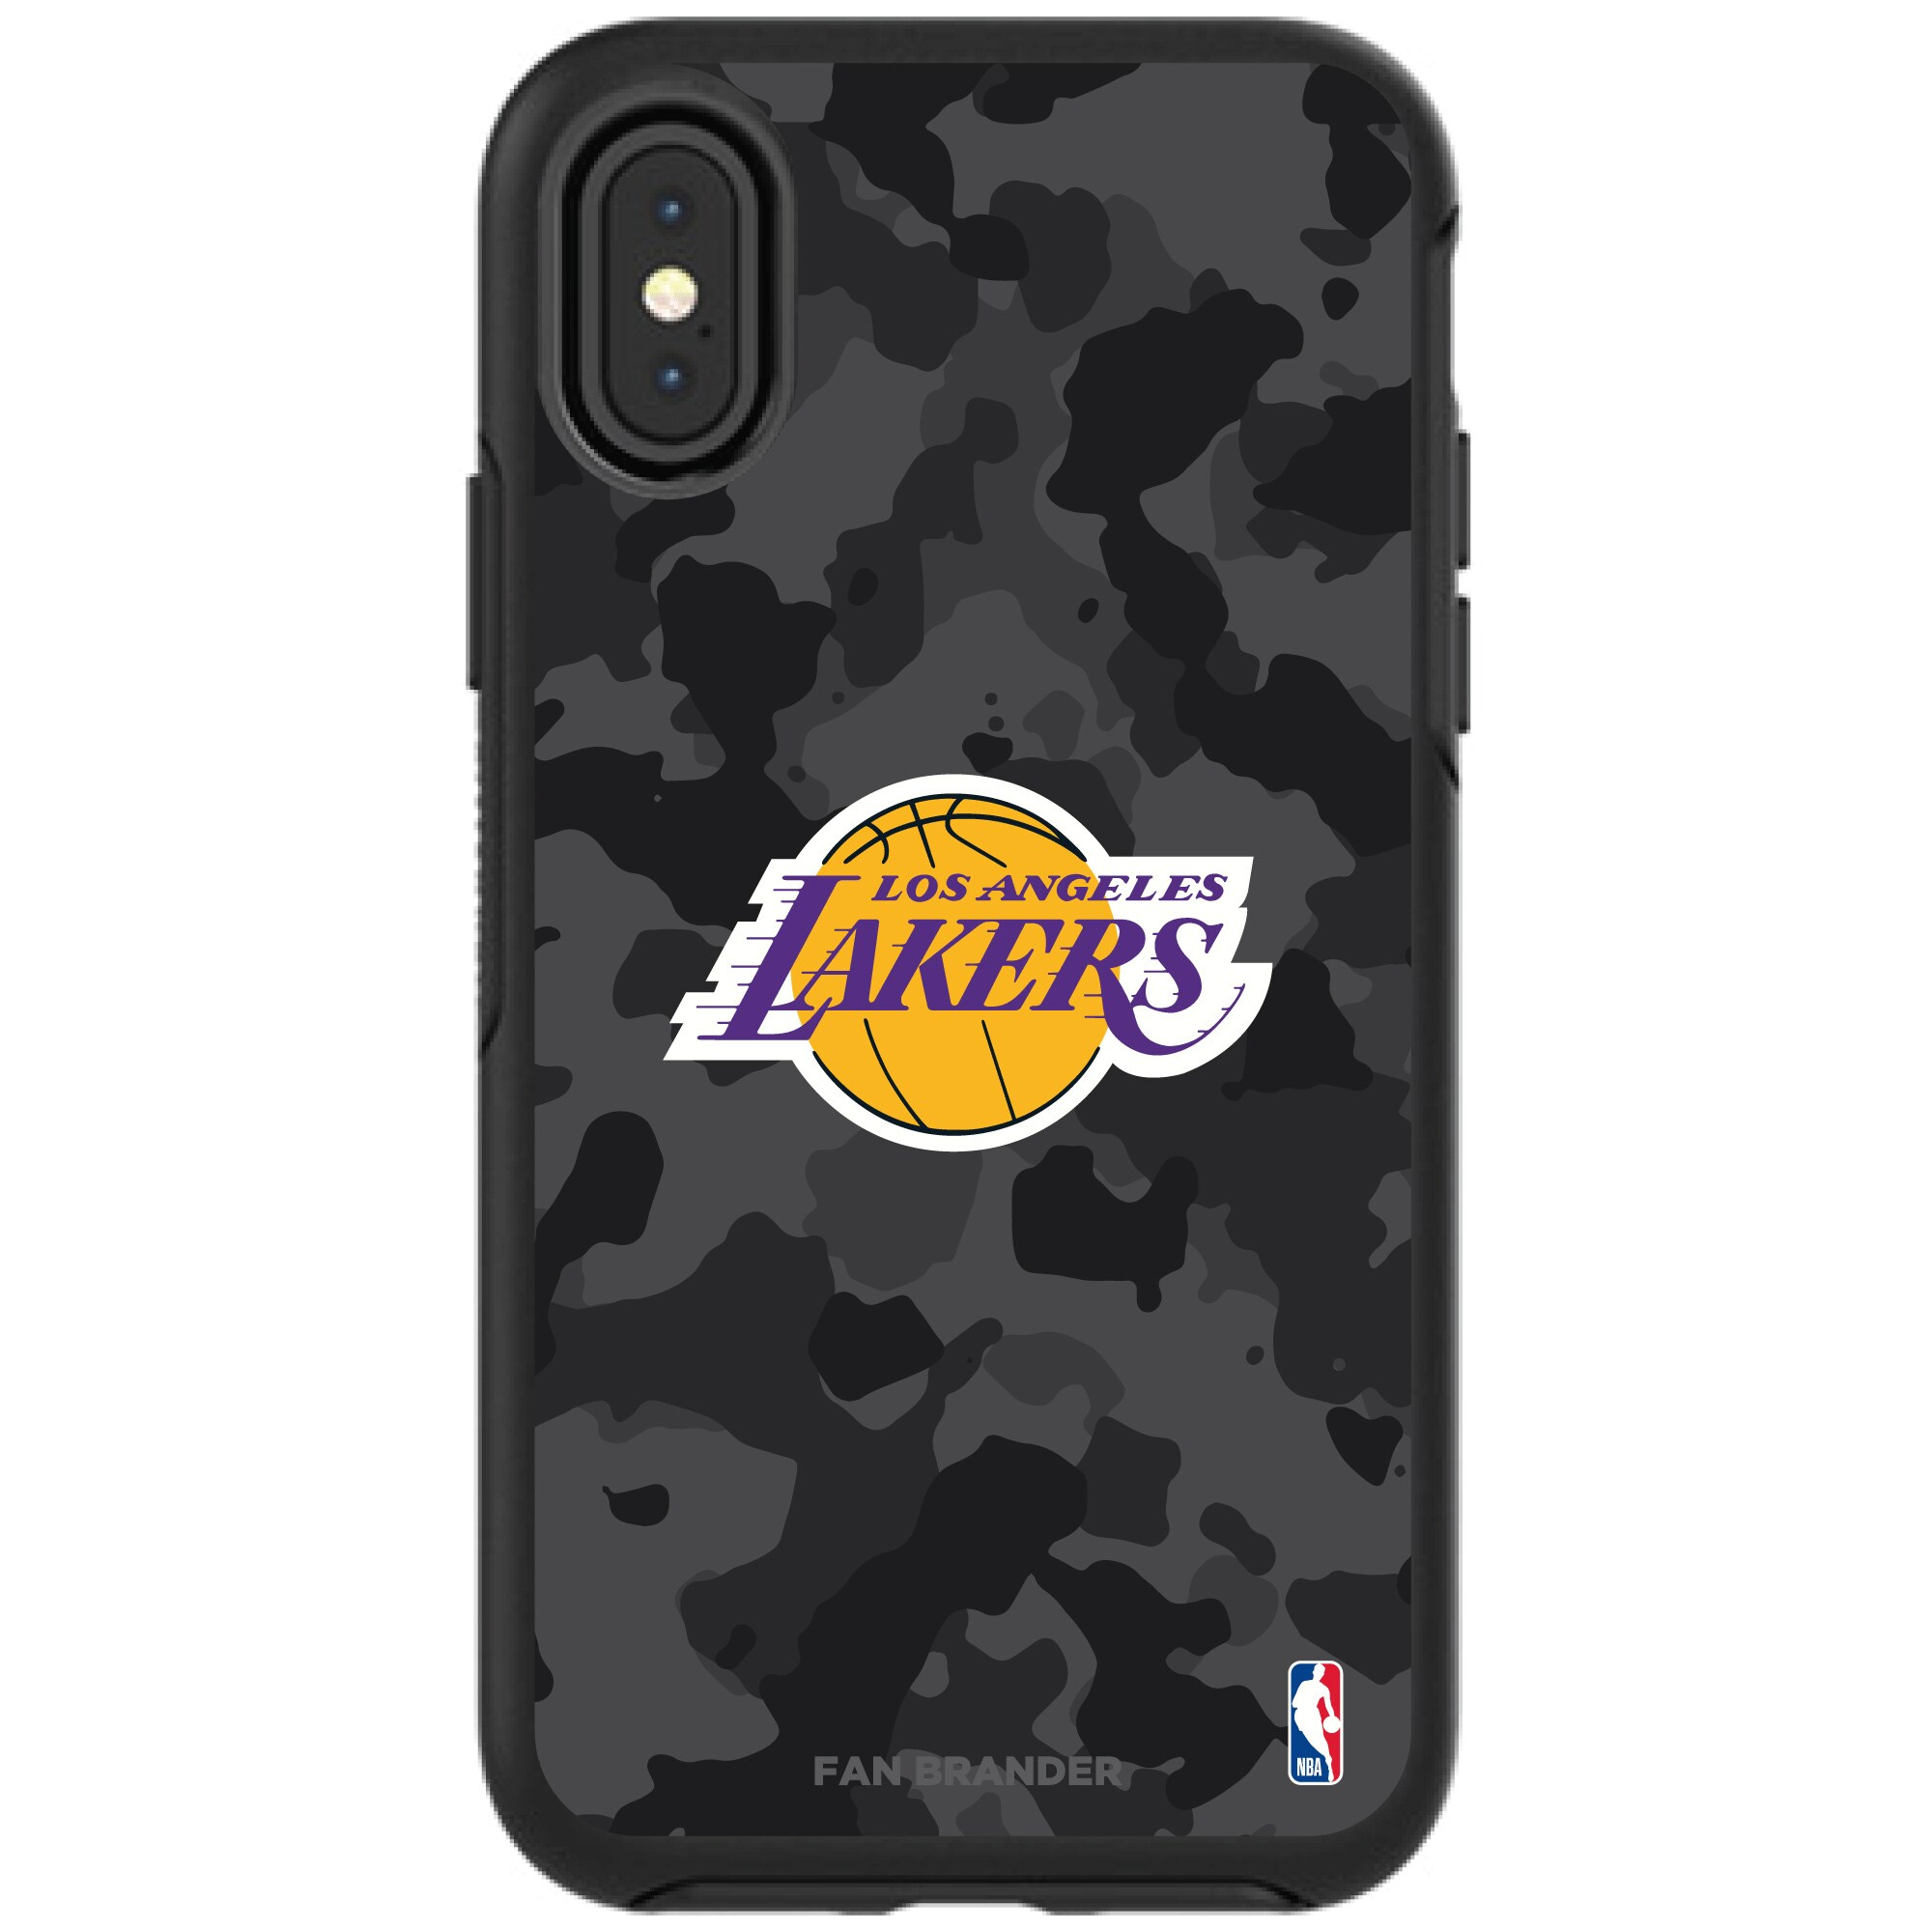 Los Angeles Lakers OtterBox Urban Camo iPhone Case